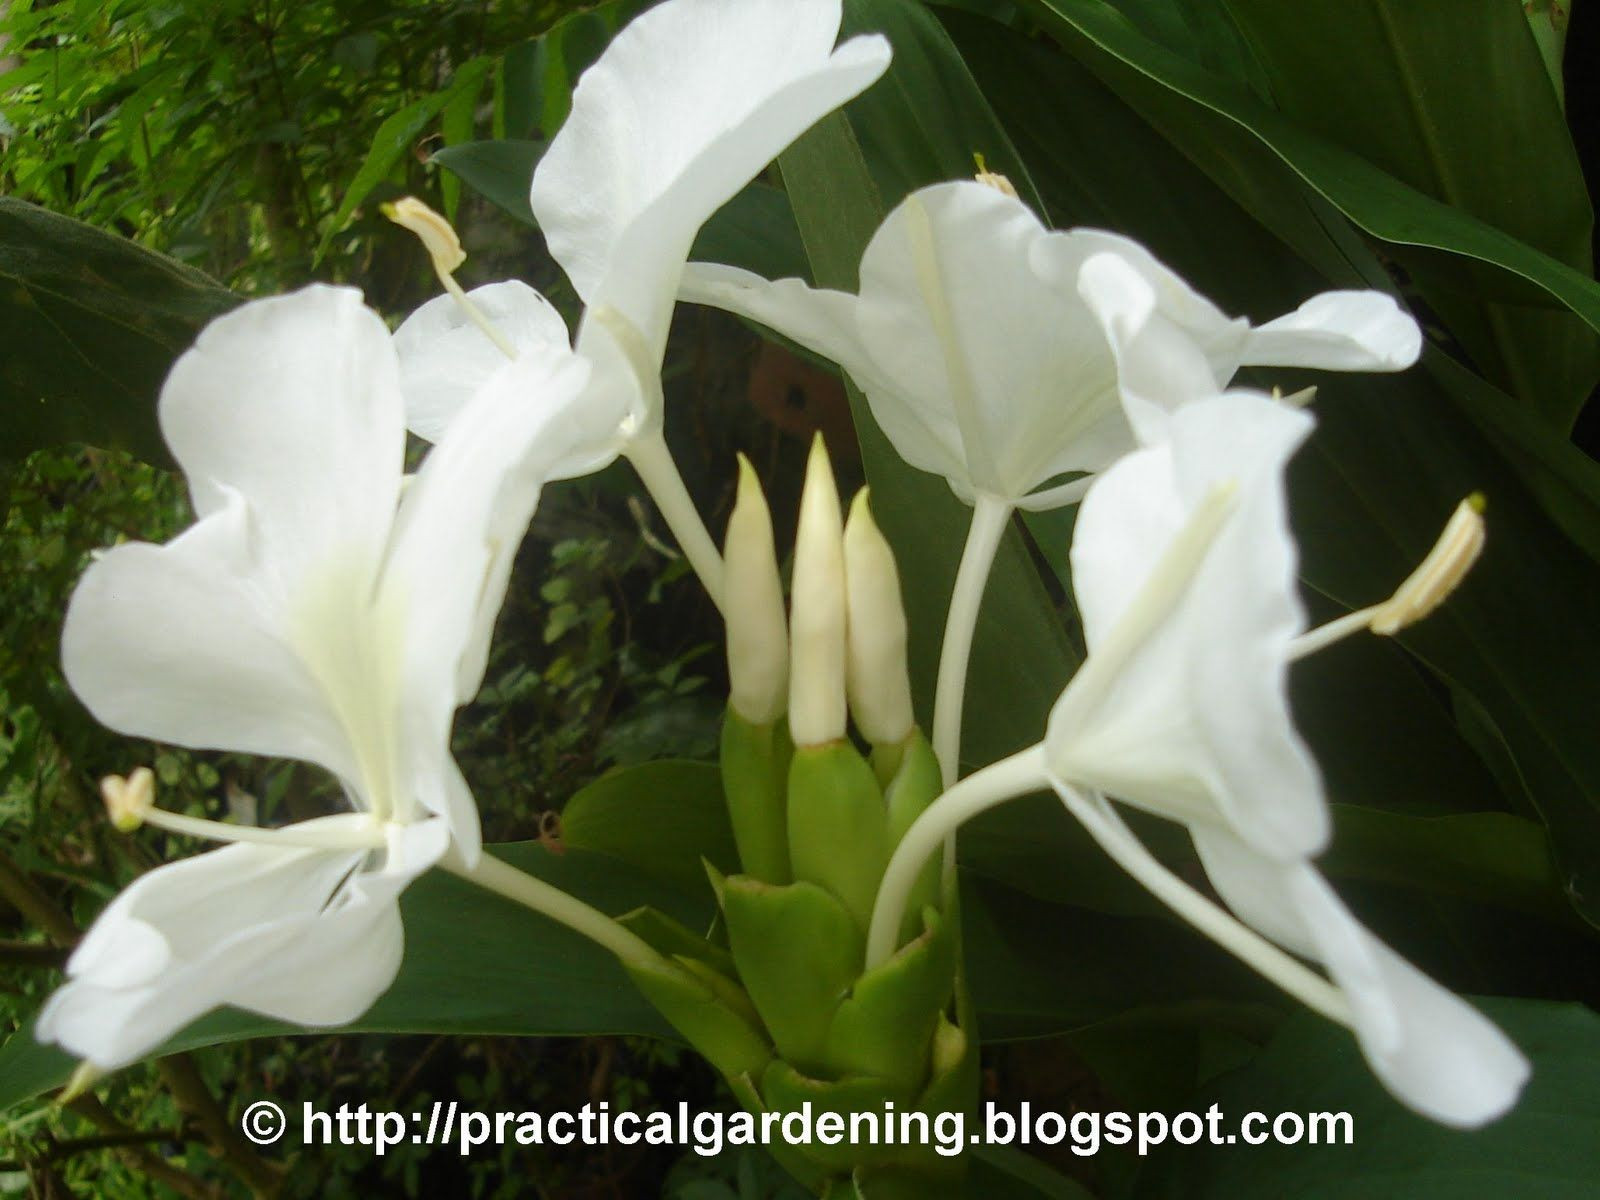 Camia or White Ginger Hedychium philippinense or Hedychium coronarium Practical Gardening